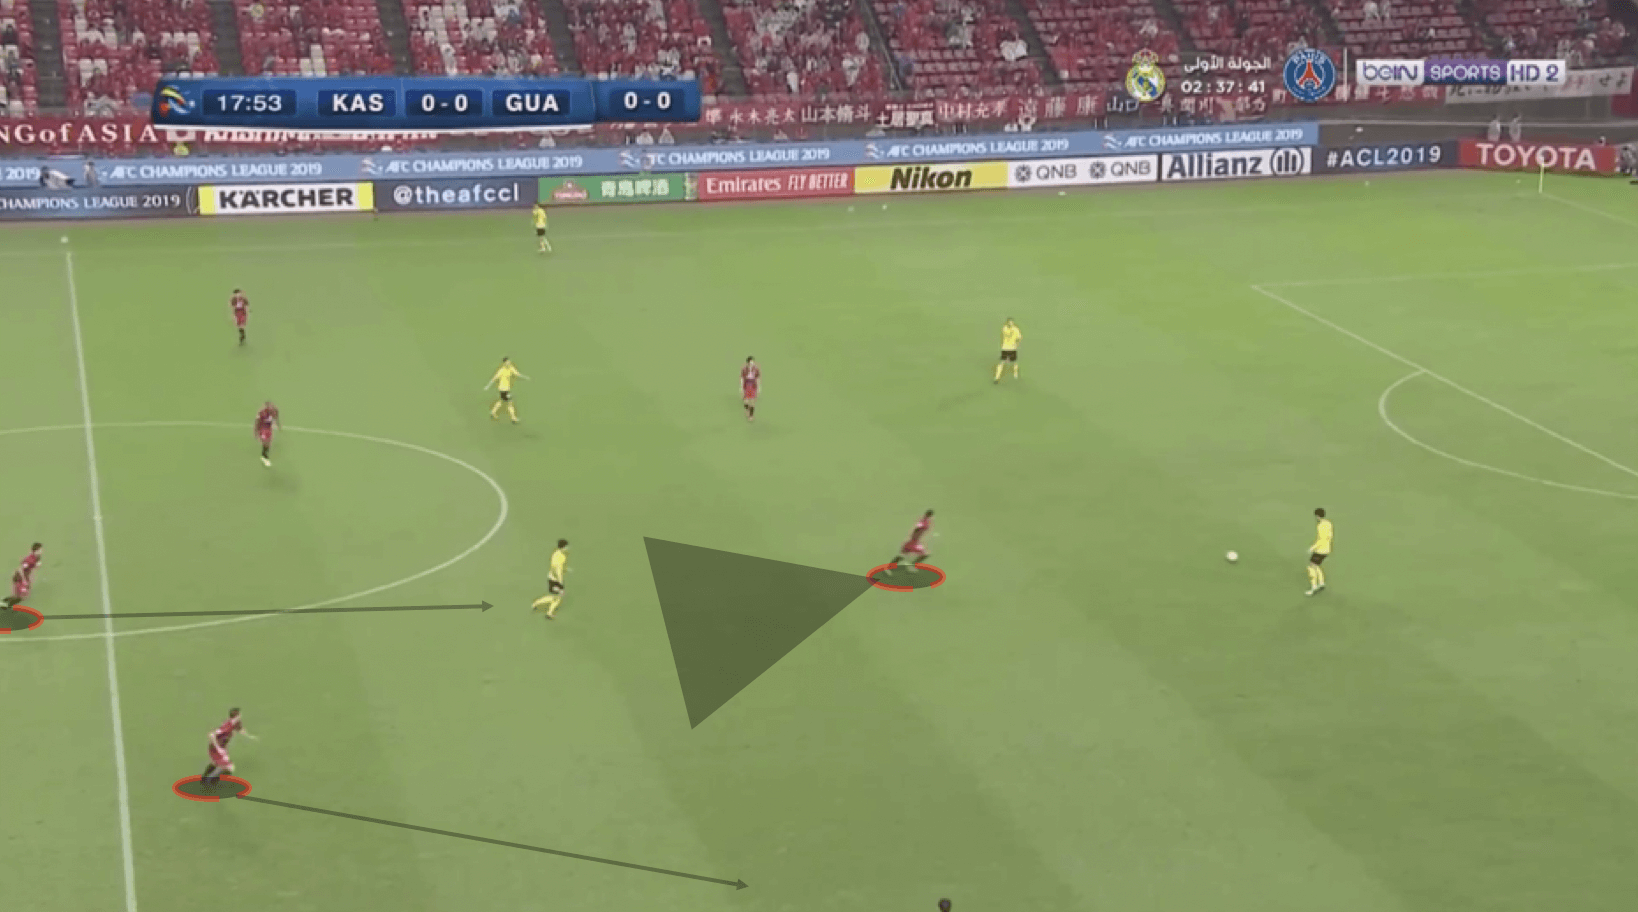 asian-champions-league-2019-kashima-antlers-vs-guangzhou-evergrande-taobao-tactical-anaylsis-tactics